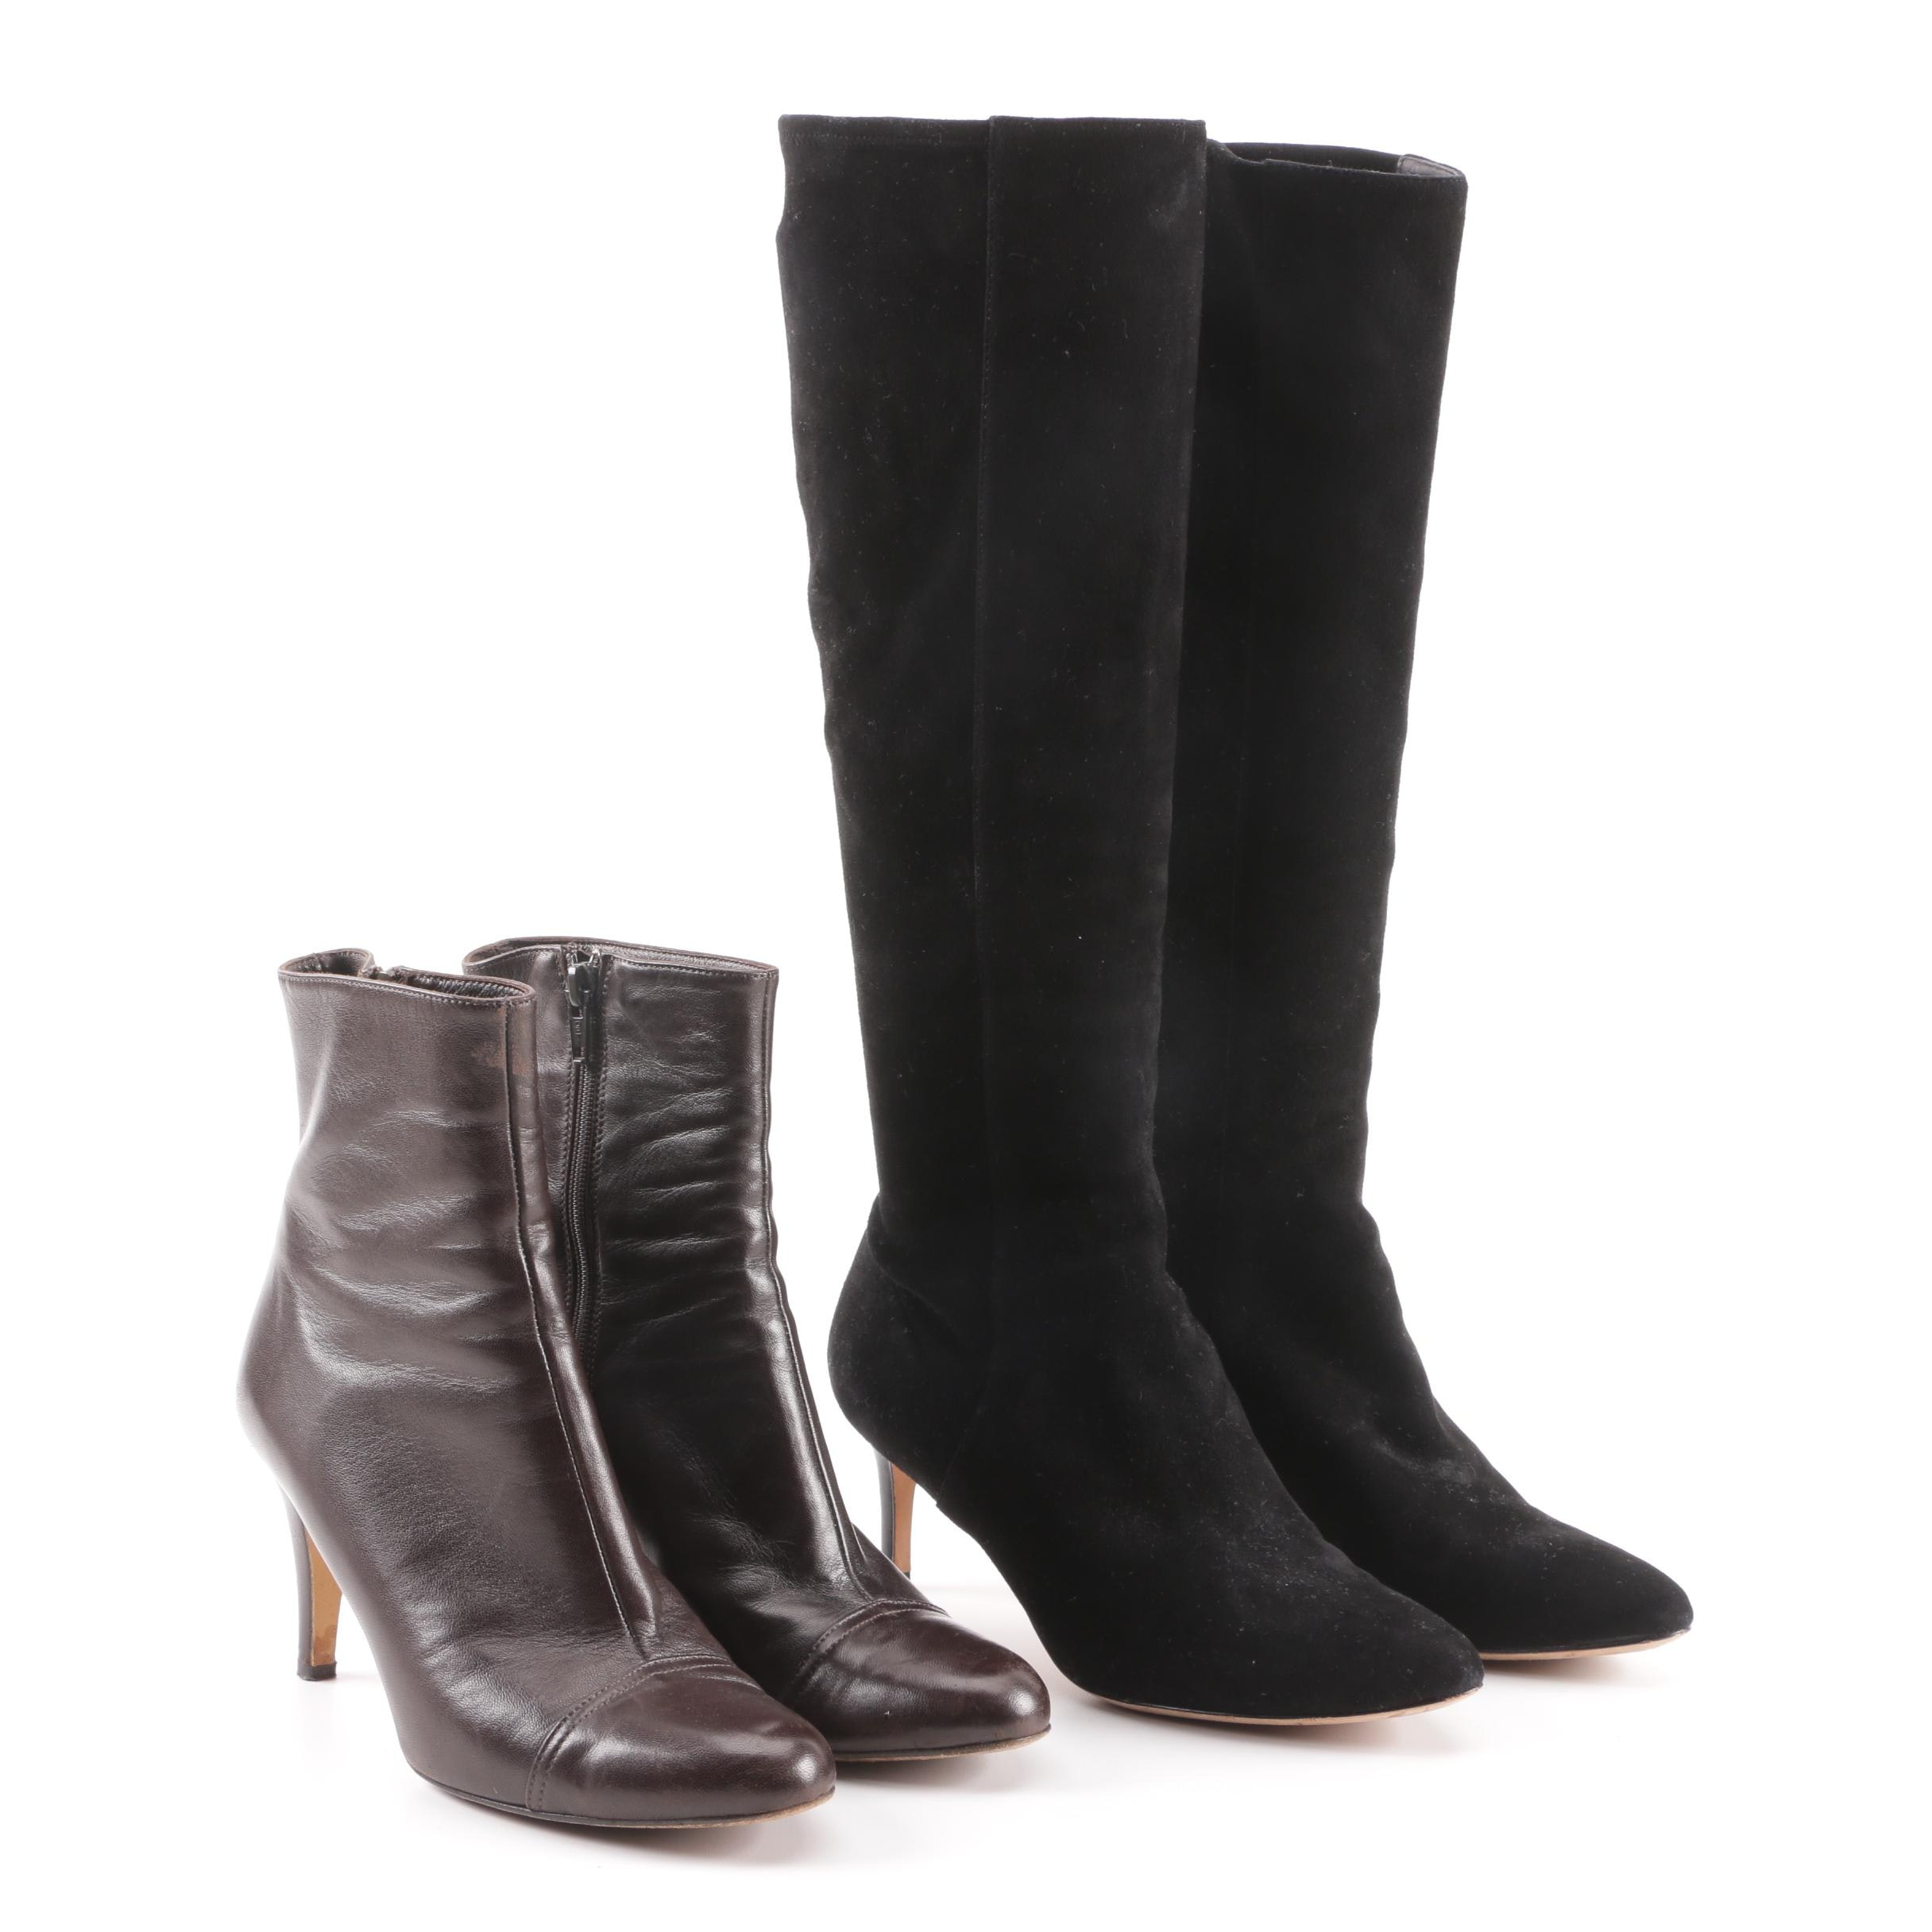 Isaac Mizrahi Leather Ankle Boots and Cole Haan Suede Tall Boots